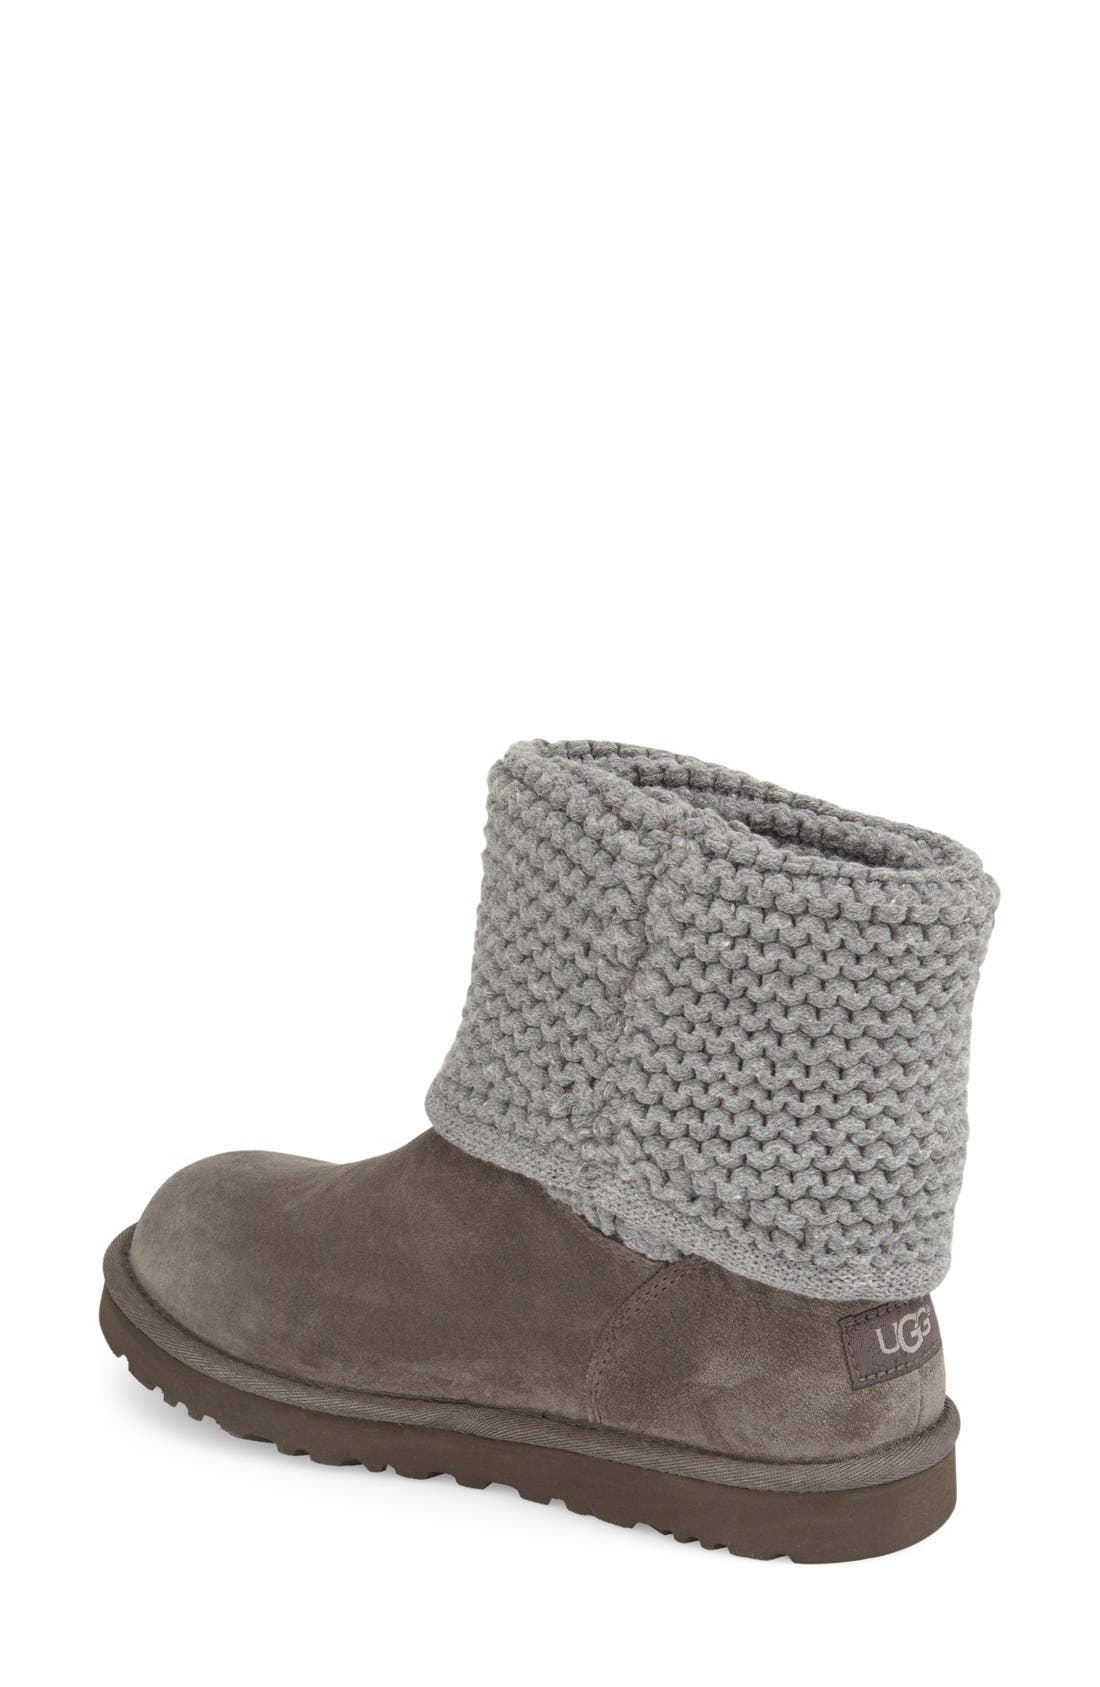 Shaina Knit Cuff Bootie,                             Alternate thumbnail 6, color,